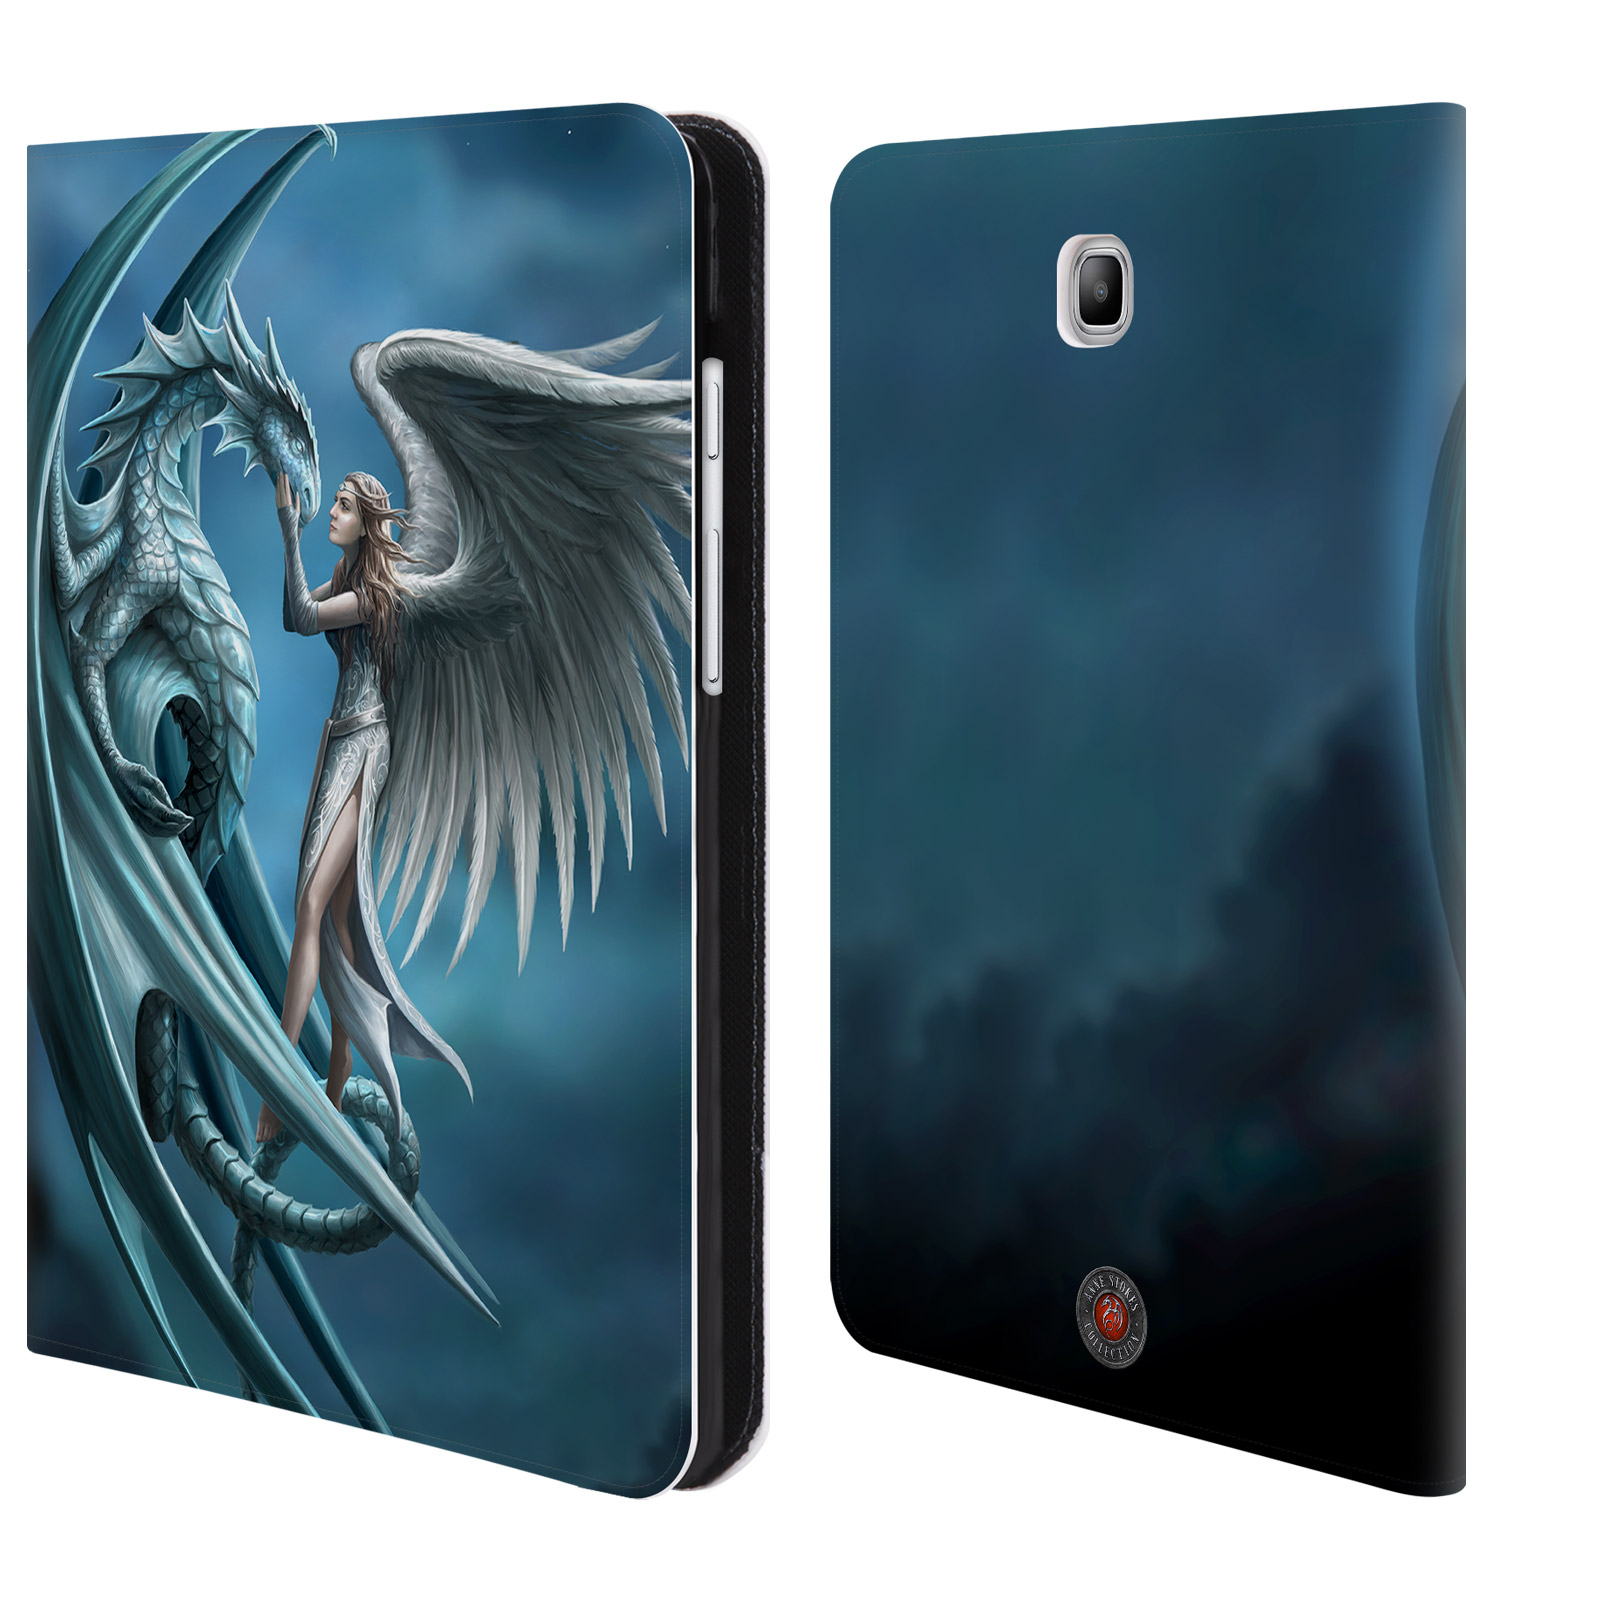 OFFICIAL ANNE STOKES DRAGON FRIENDSHIP LEATHER BOOK WALLET CASE COVER FOR SAMSUNG GALAXY TABLETS